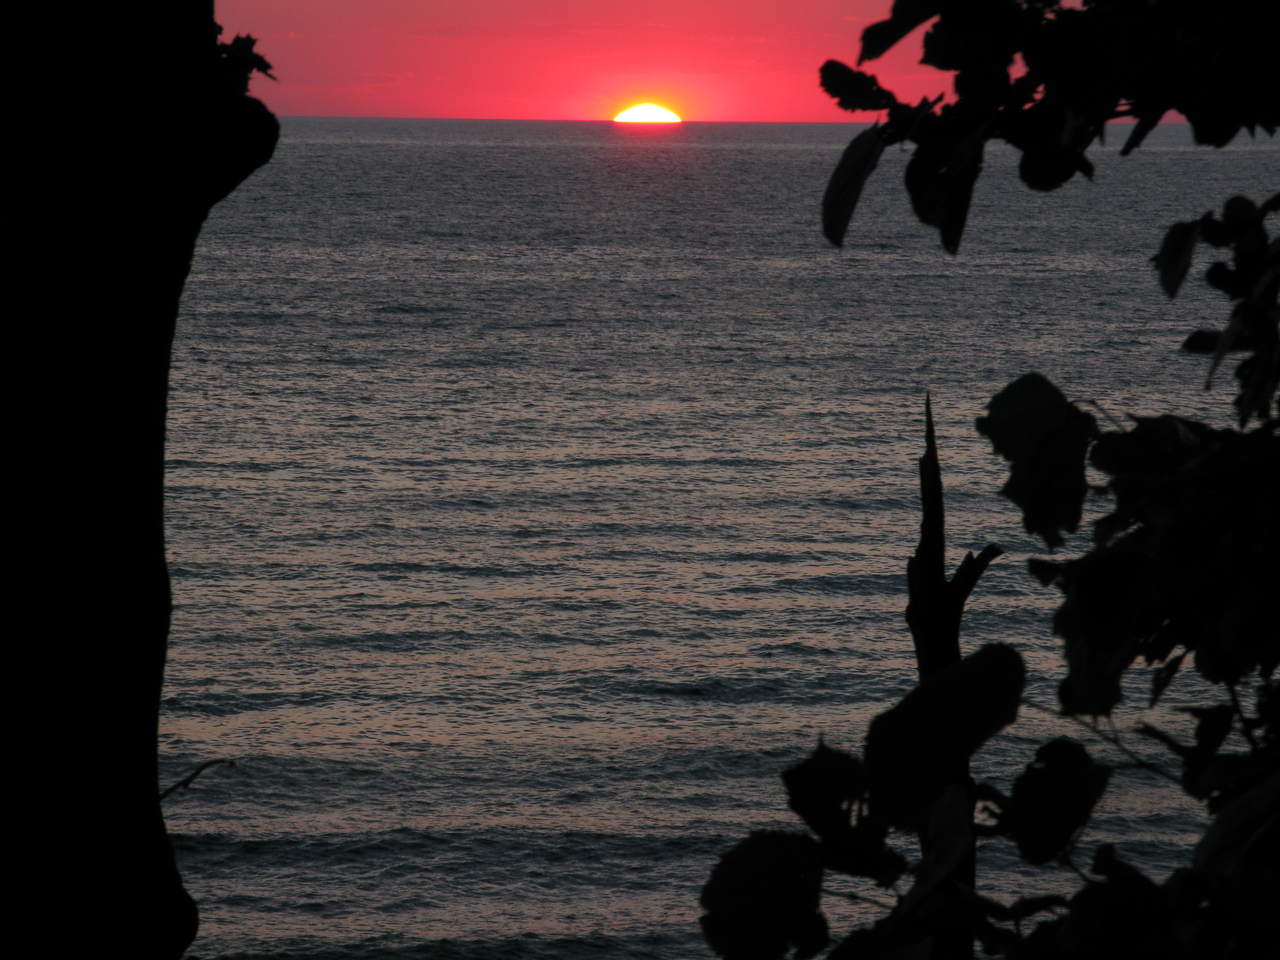 Another Lake Michigan Sunset. 2009. I guess the year doesn't matter, they've been happening for thousands of years just like this.